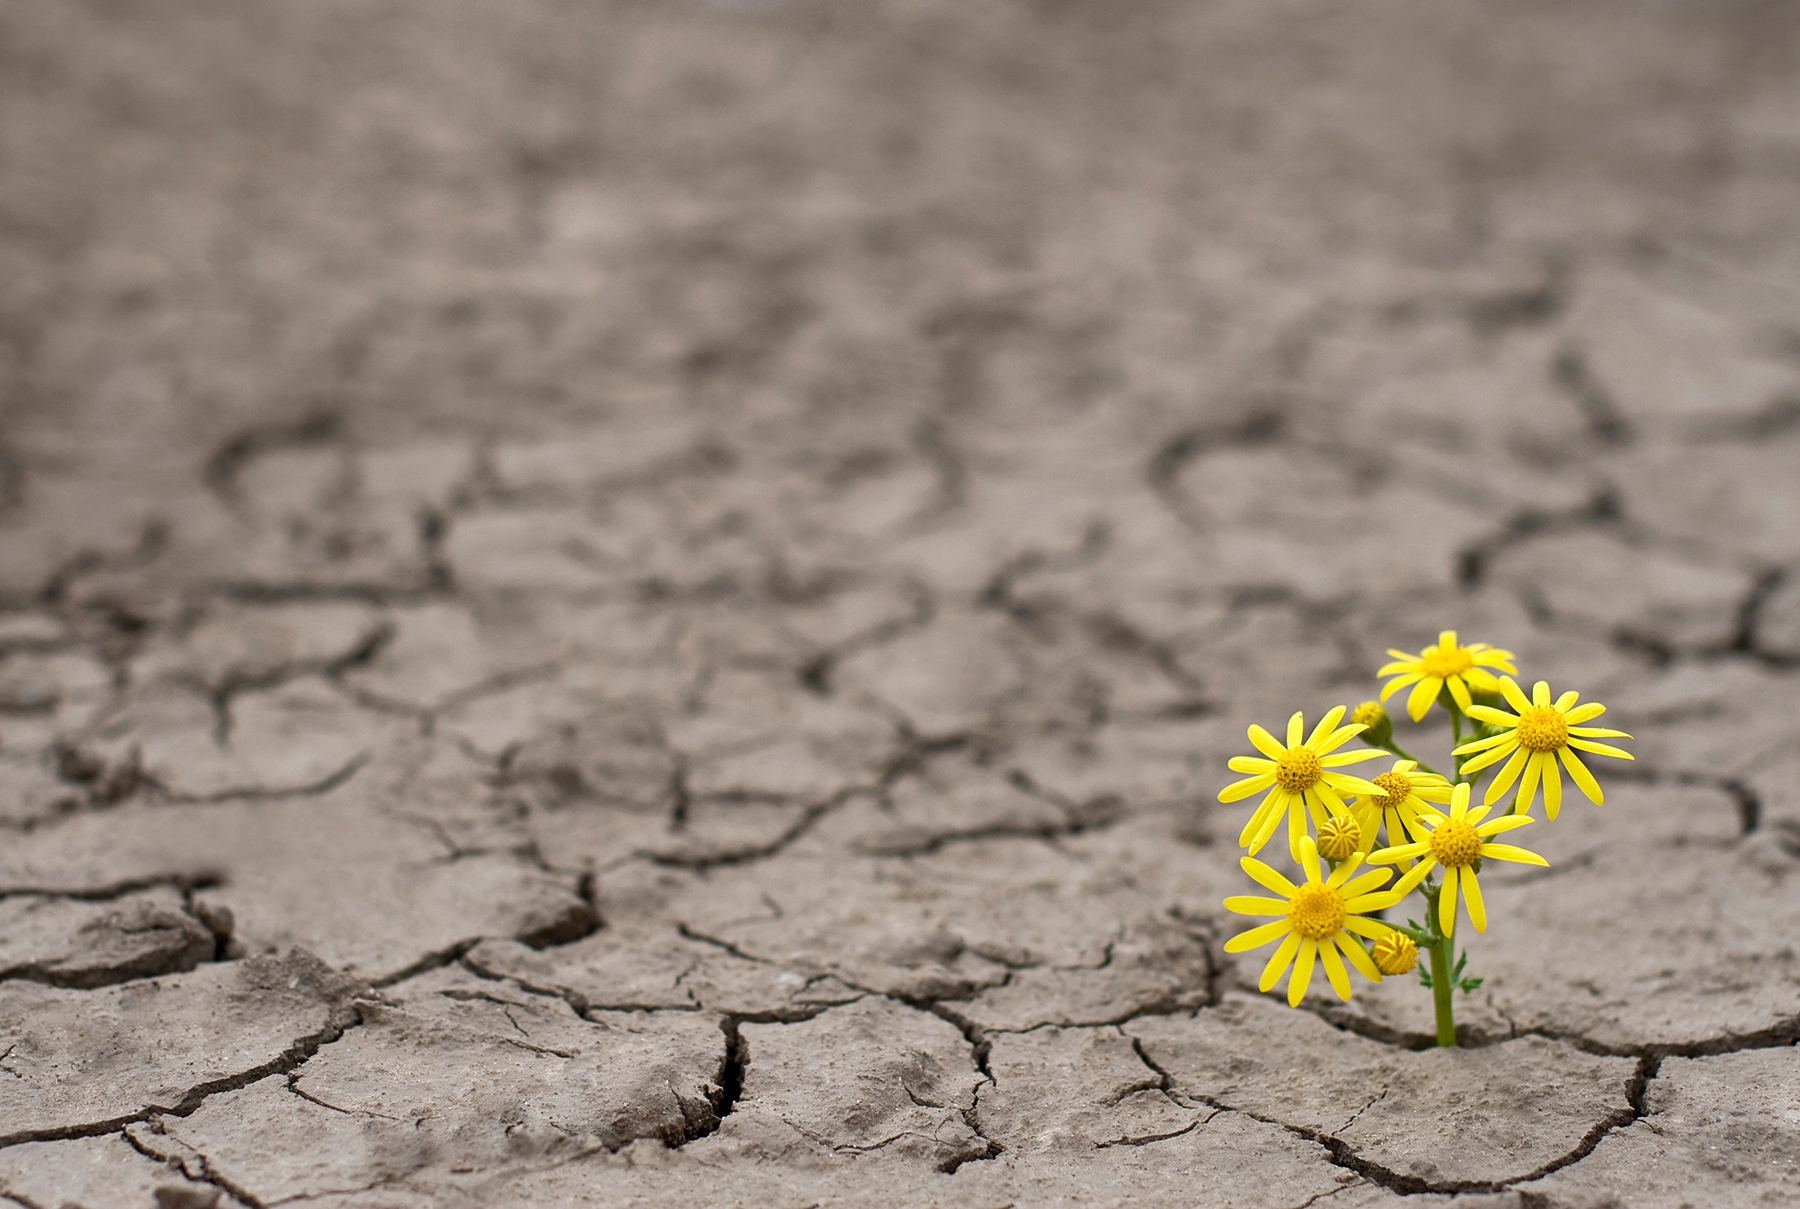 Yellow flowers blooming from dry cracked ground